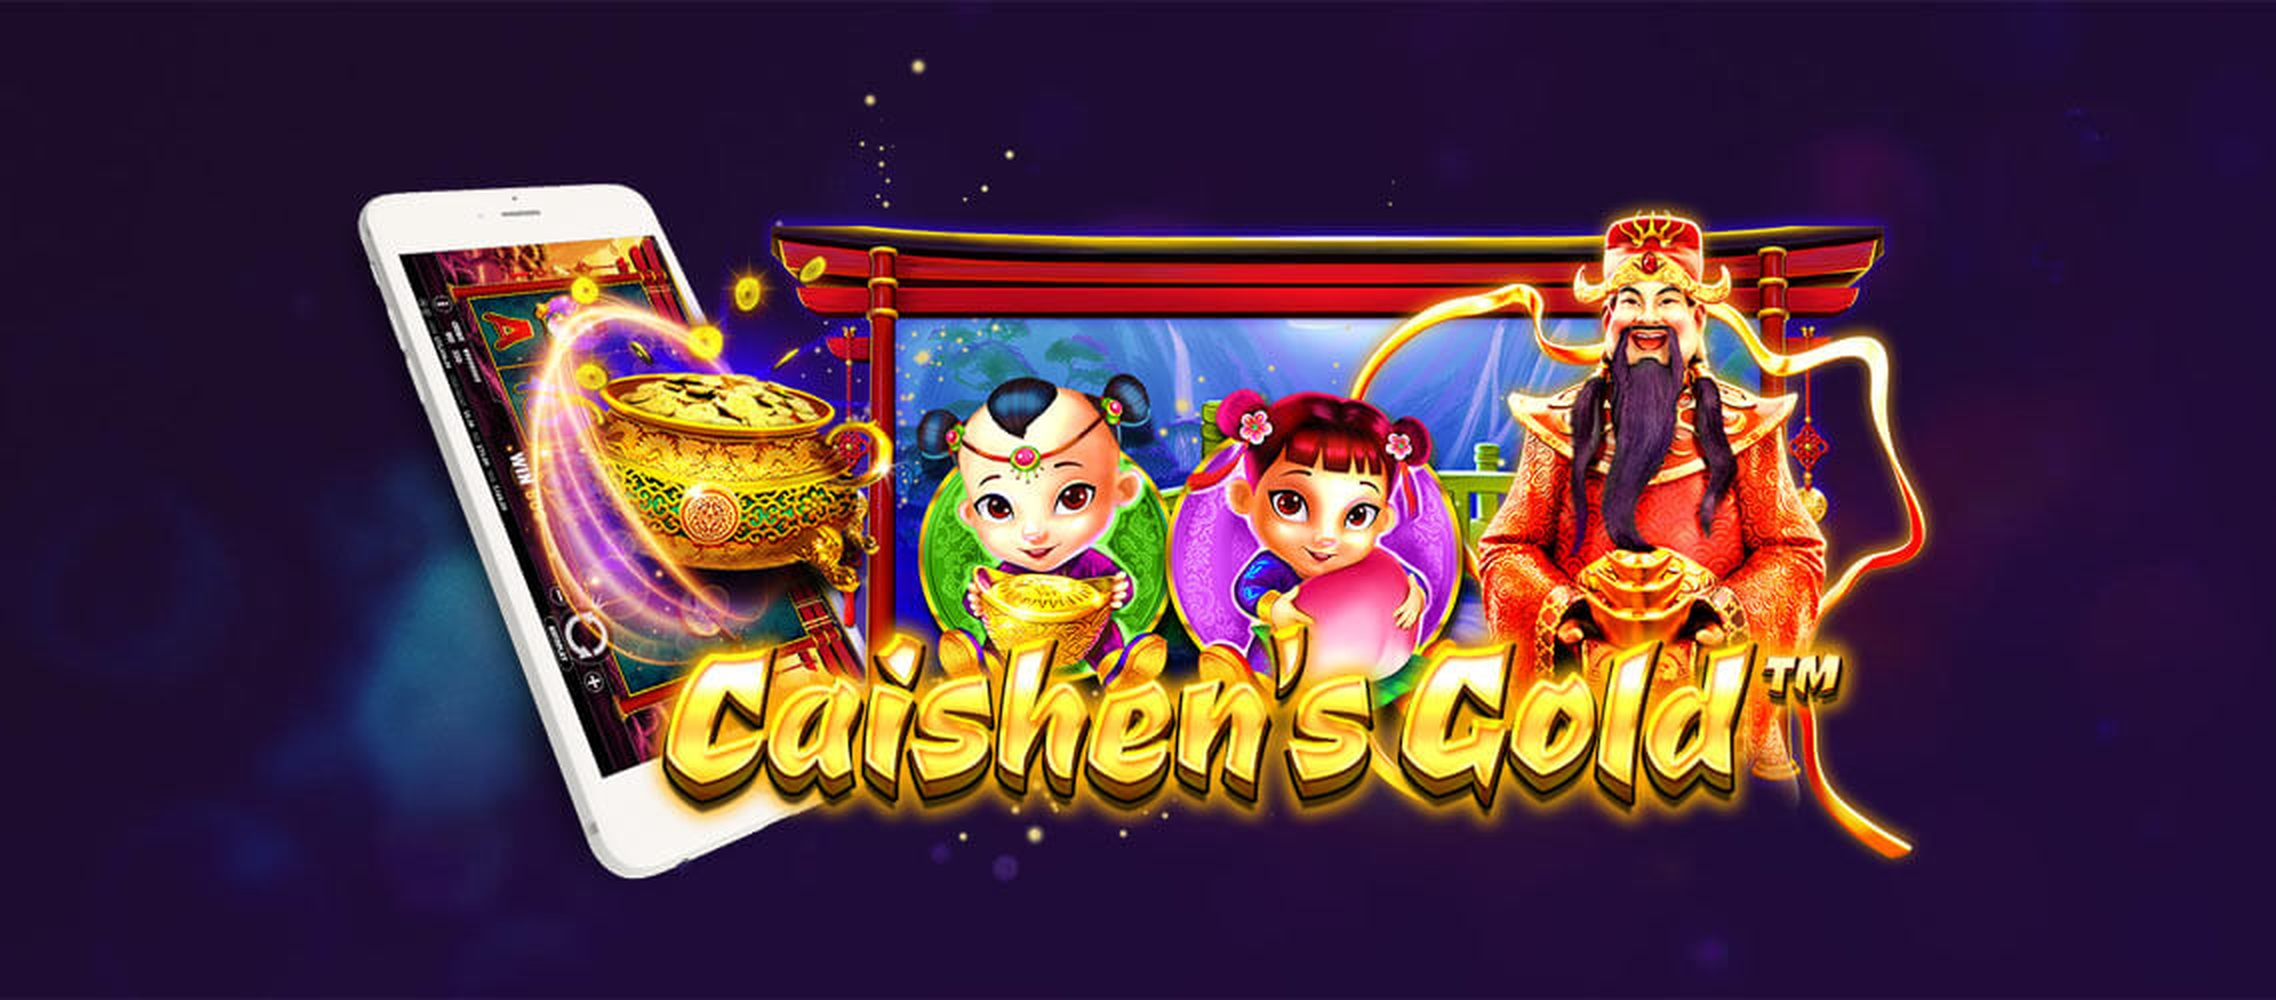 The Caishen's Gold Online Slot Demo Game by Pragmatic Play